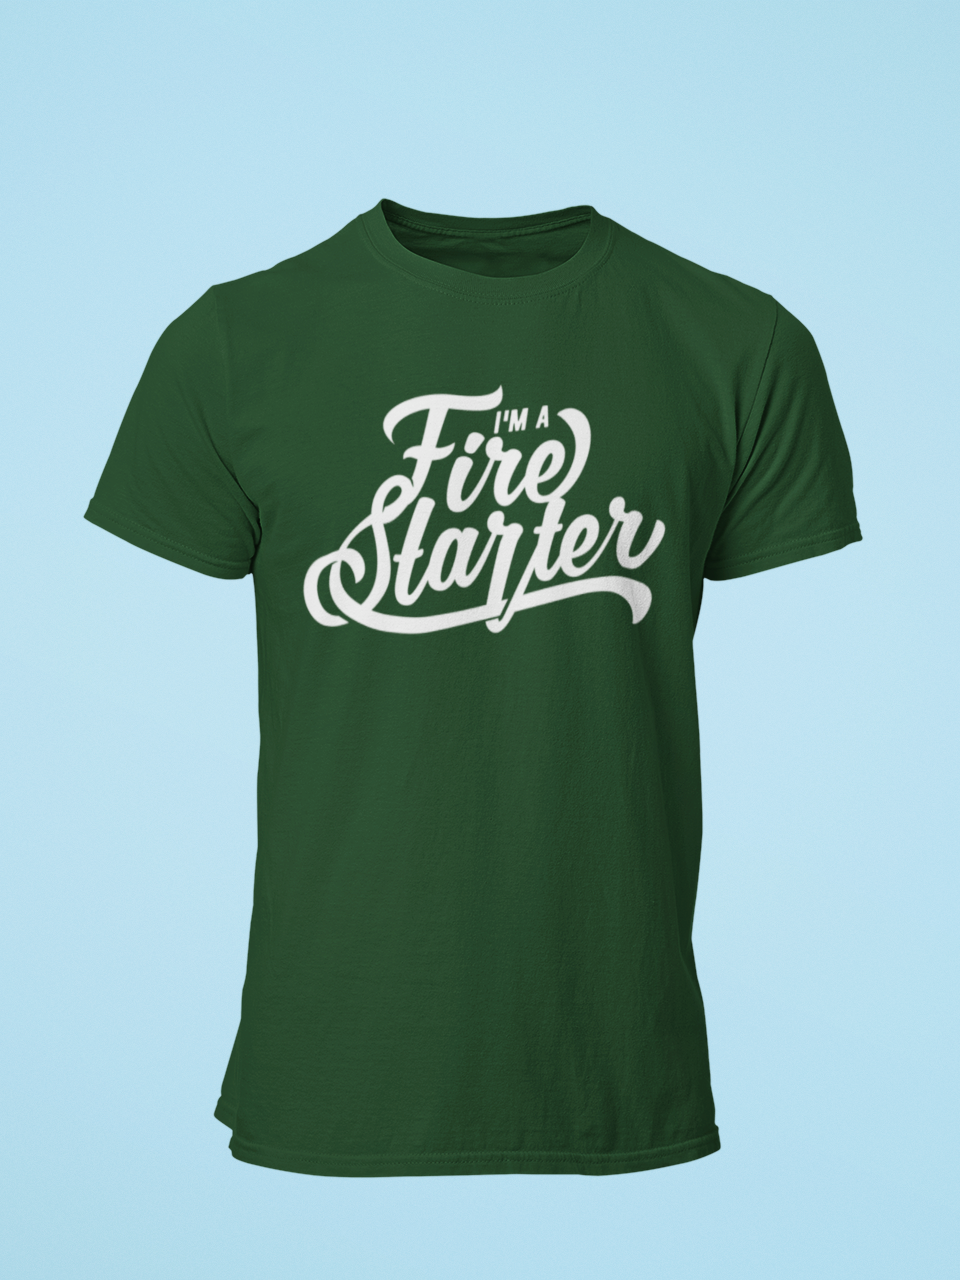 Fire Starter - Men's Half Sleeve T-Shirt - Green